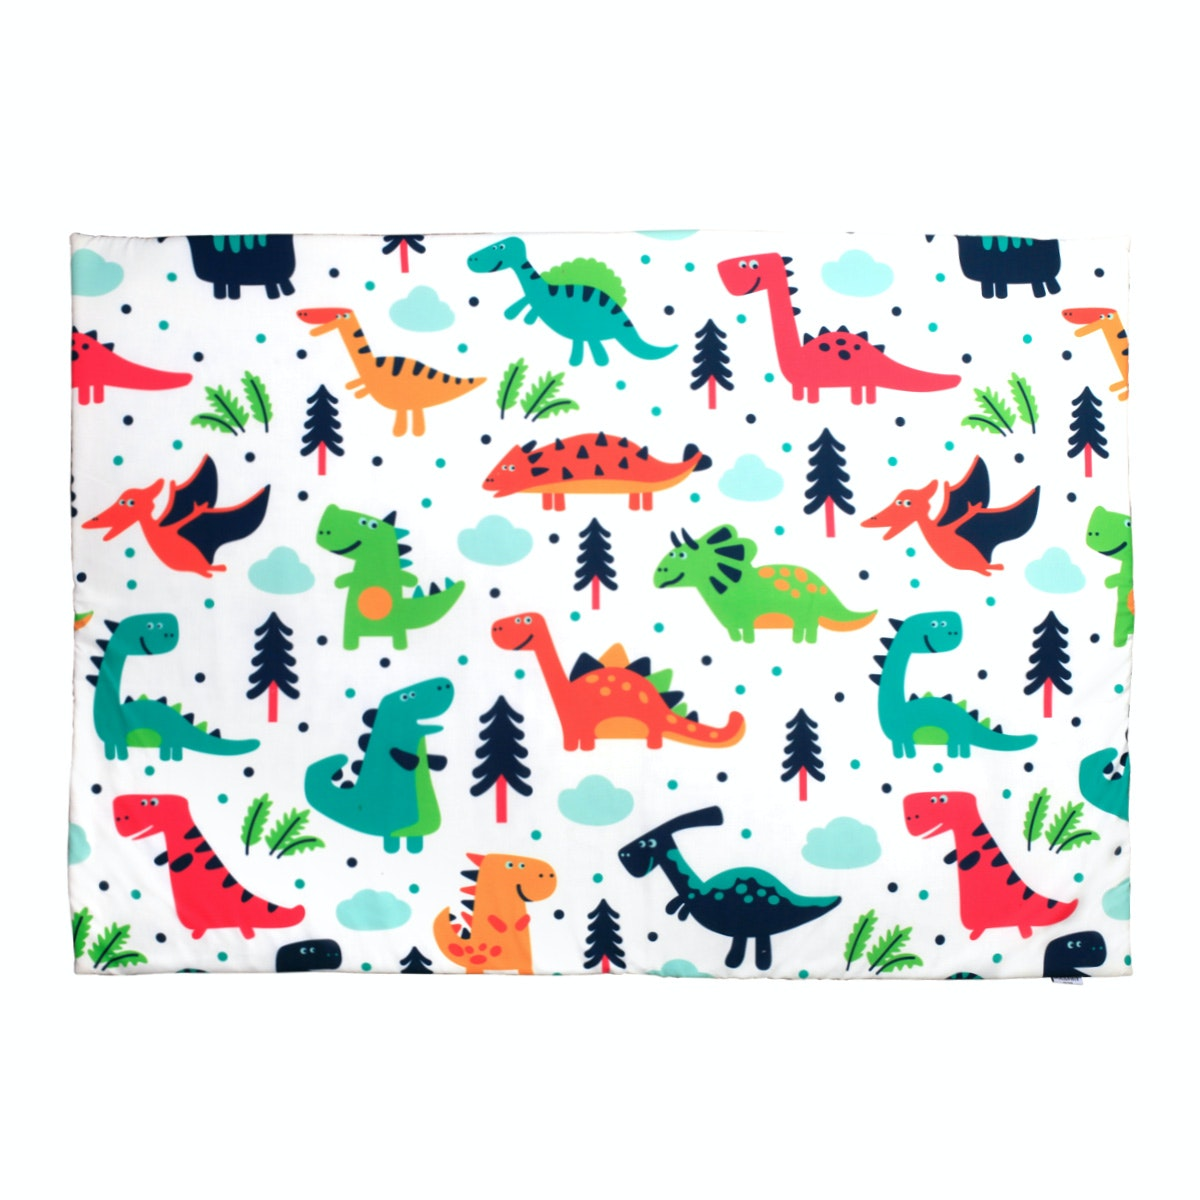 Glerry Home Decor Dino Land Rug 100x140cm